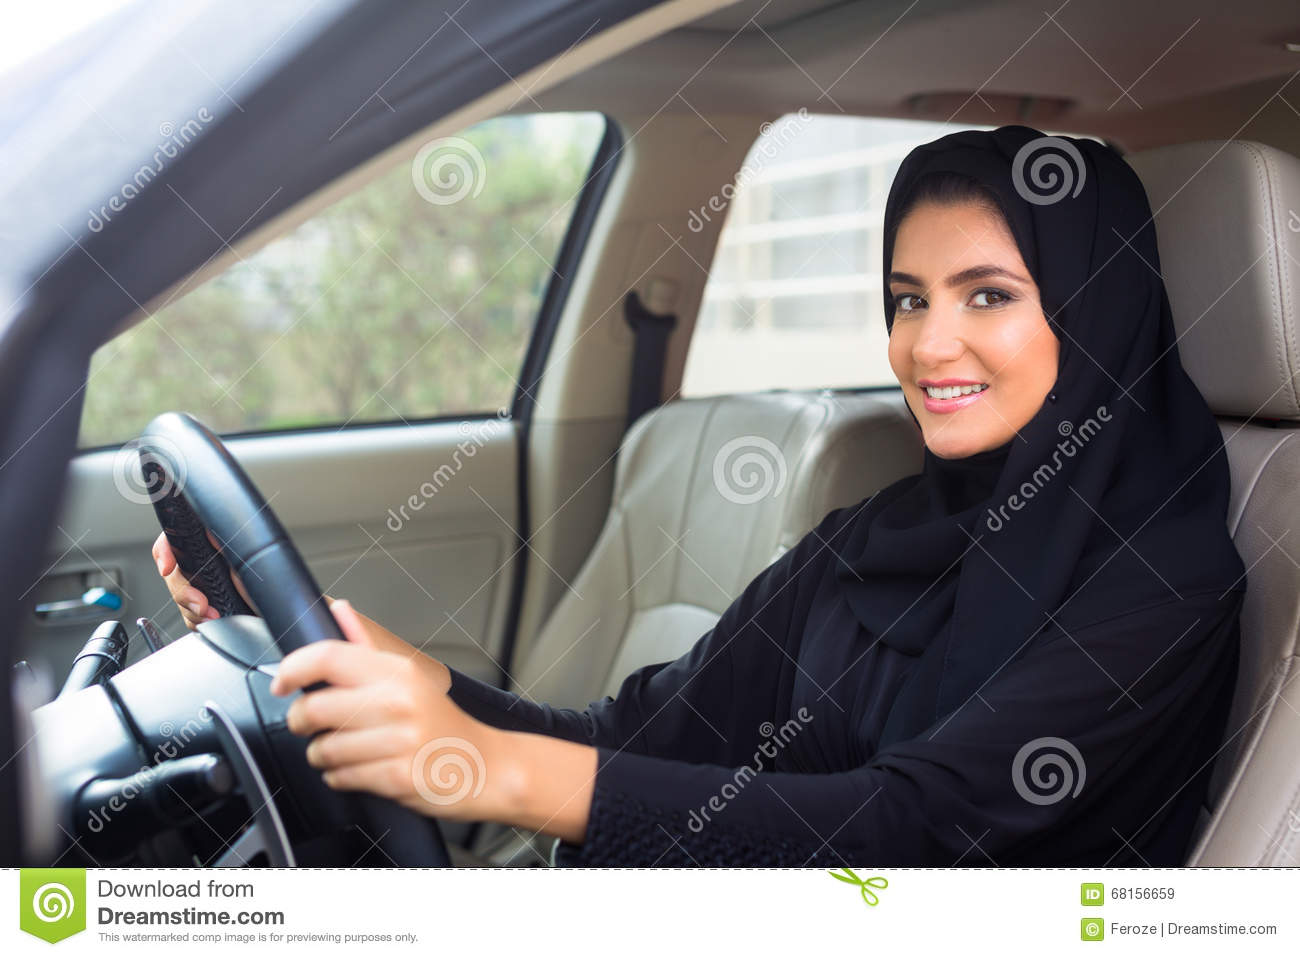 Arabian girls inside the car